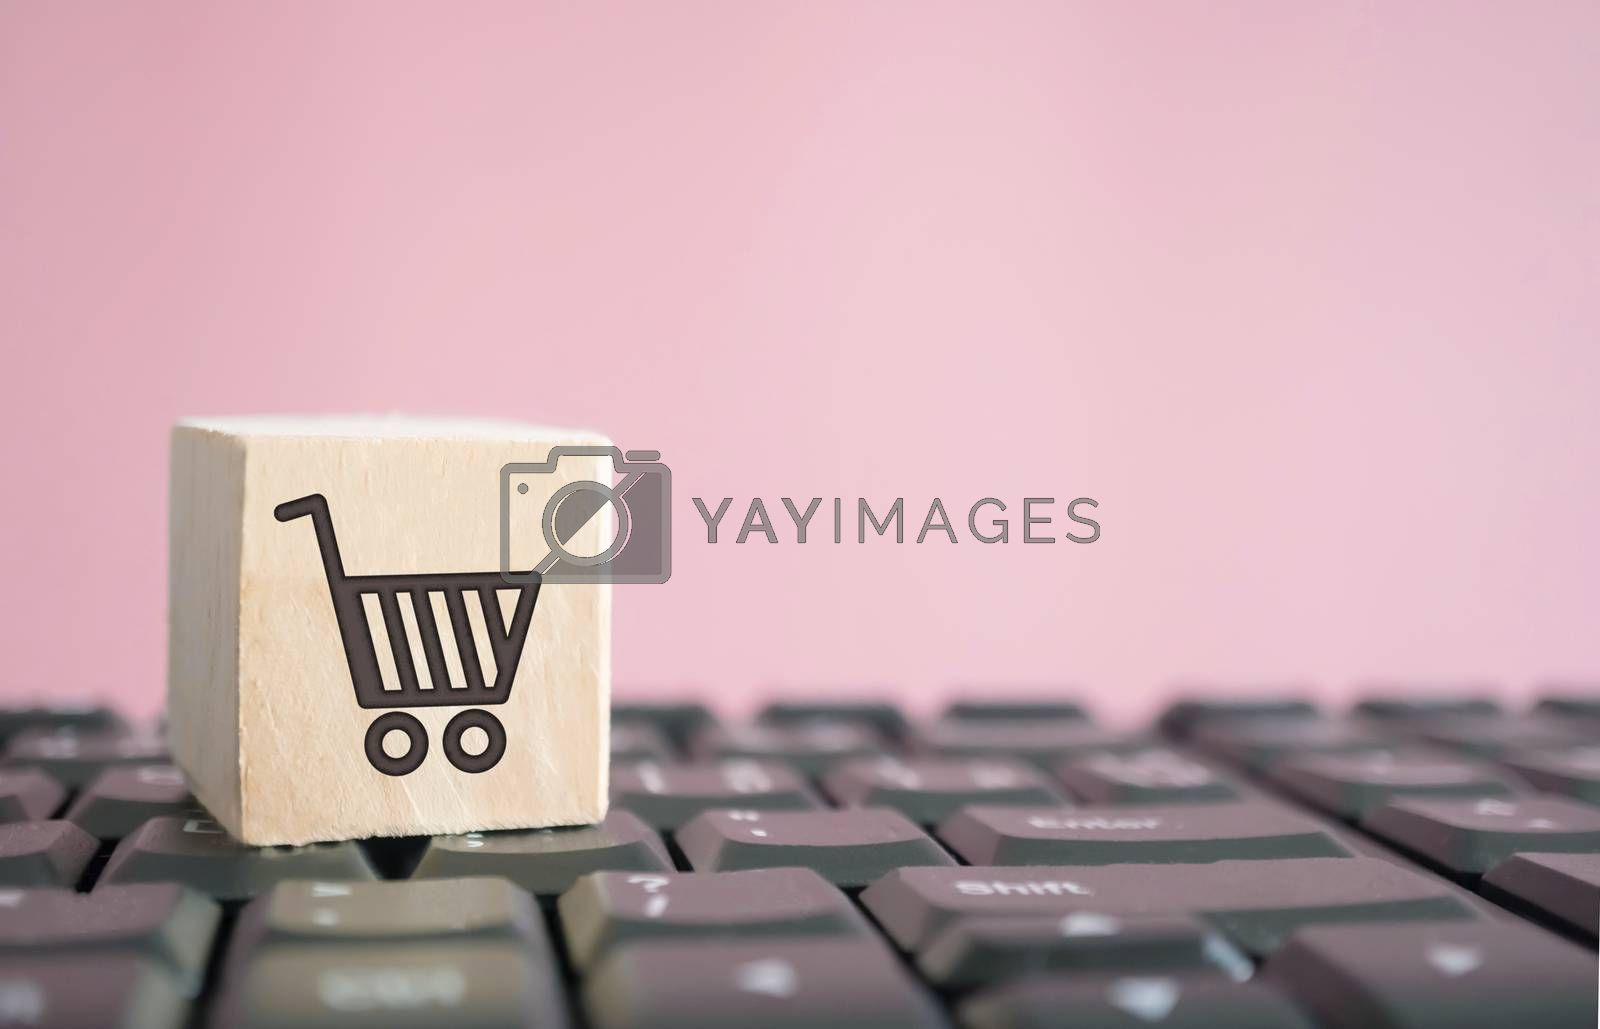 Closed up shopping cart icon on wood cube on computer keyboard. Online shoping business technology. by Suwant